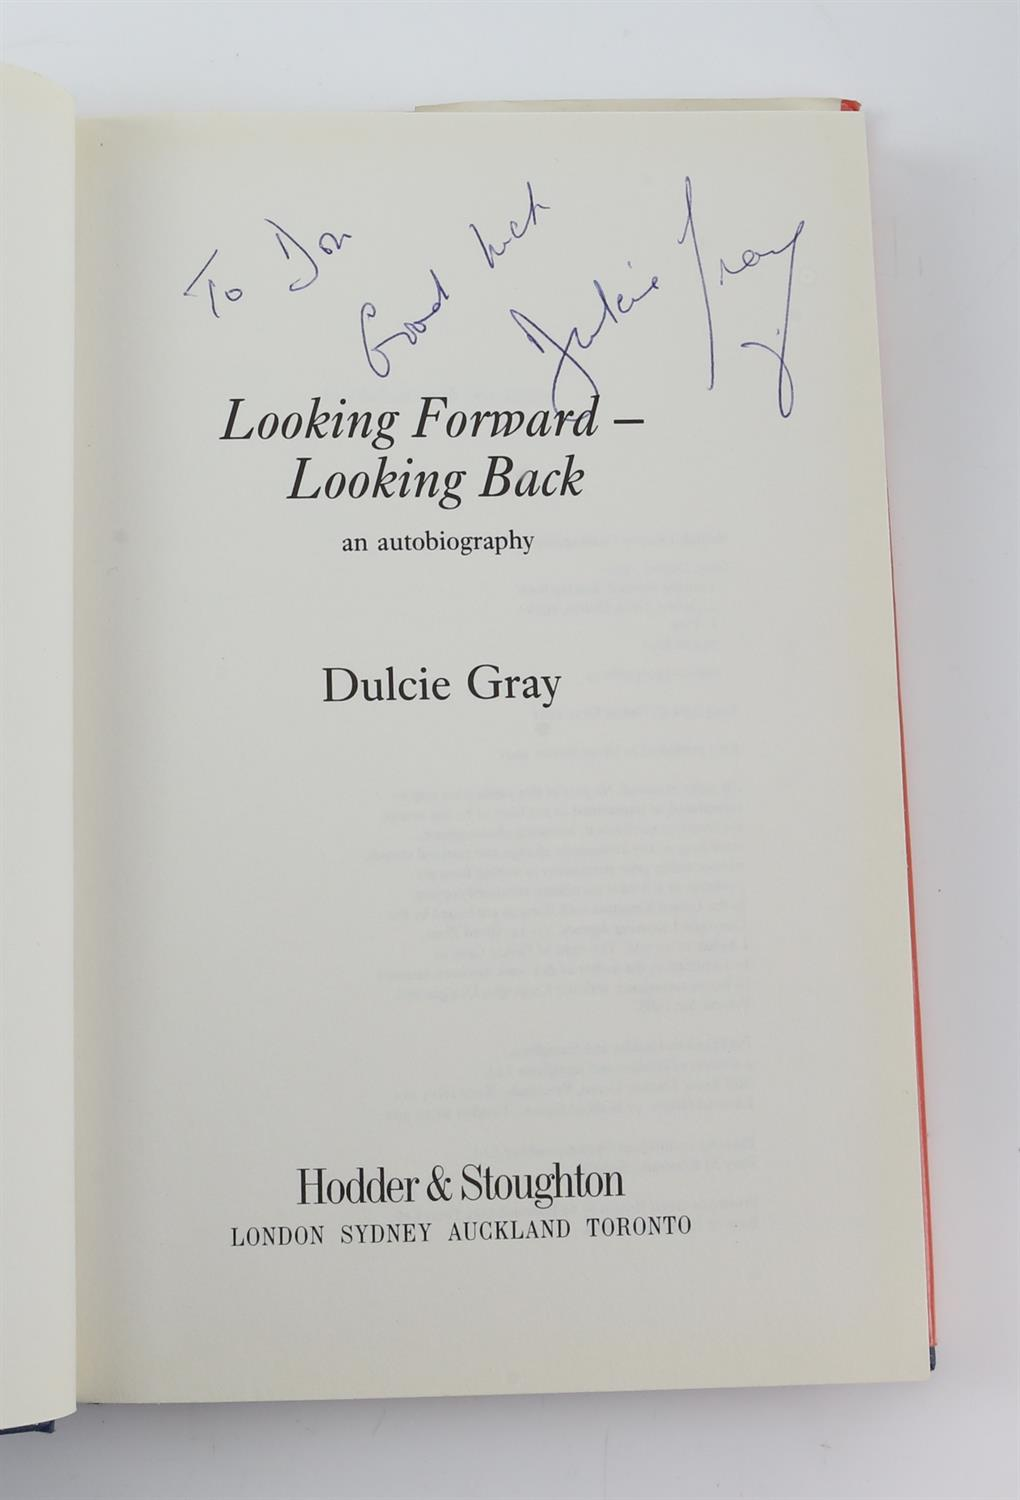 9 autographed books signed by Lauren Bacall, Richard Todd, Michael Palin, Leslie Caron, - Image 8 of 10